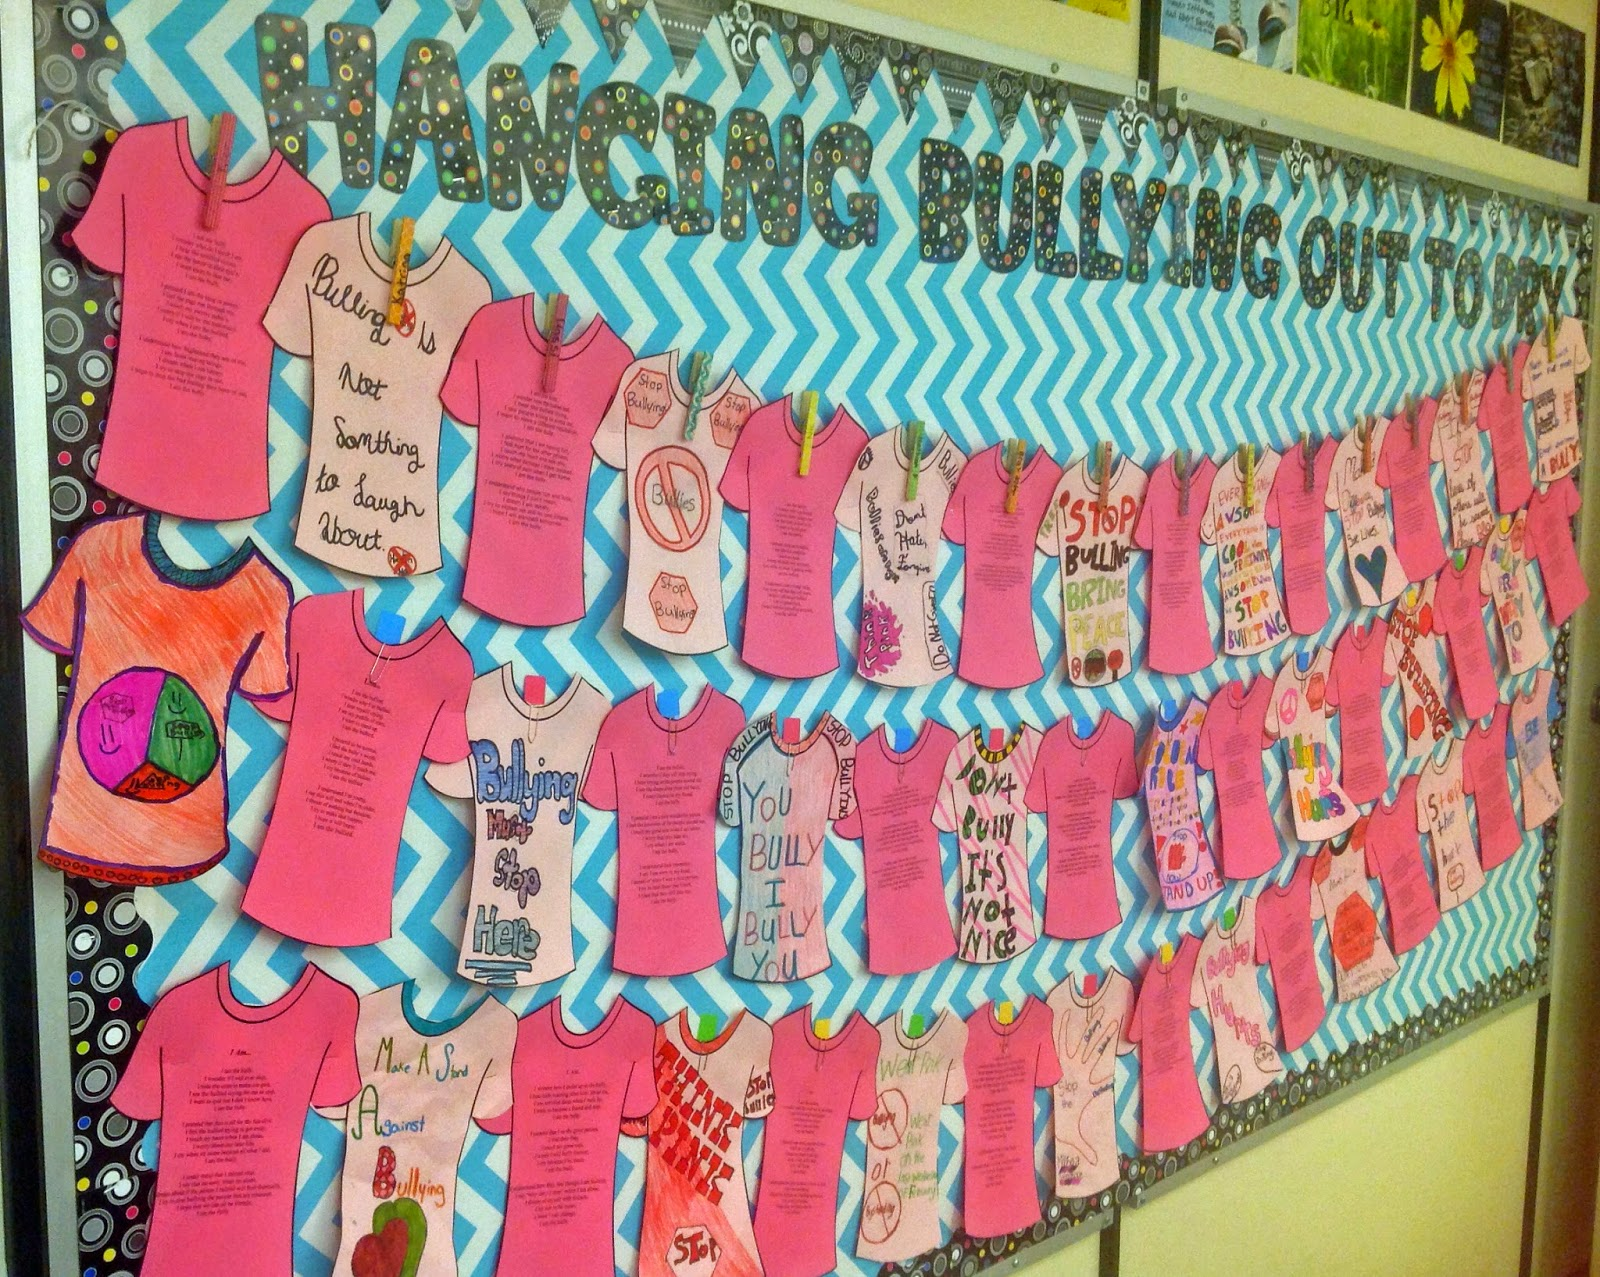 Runde S Room Think Pink An Anti Bullying Resource